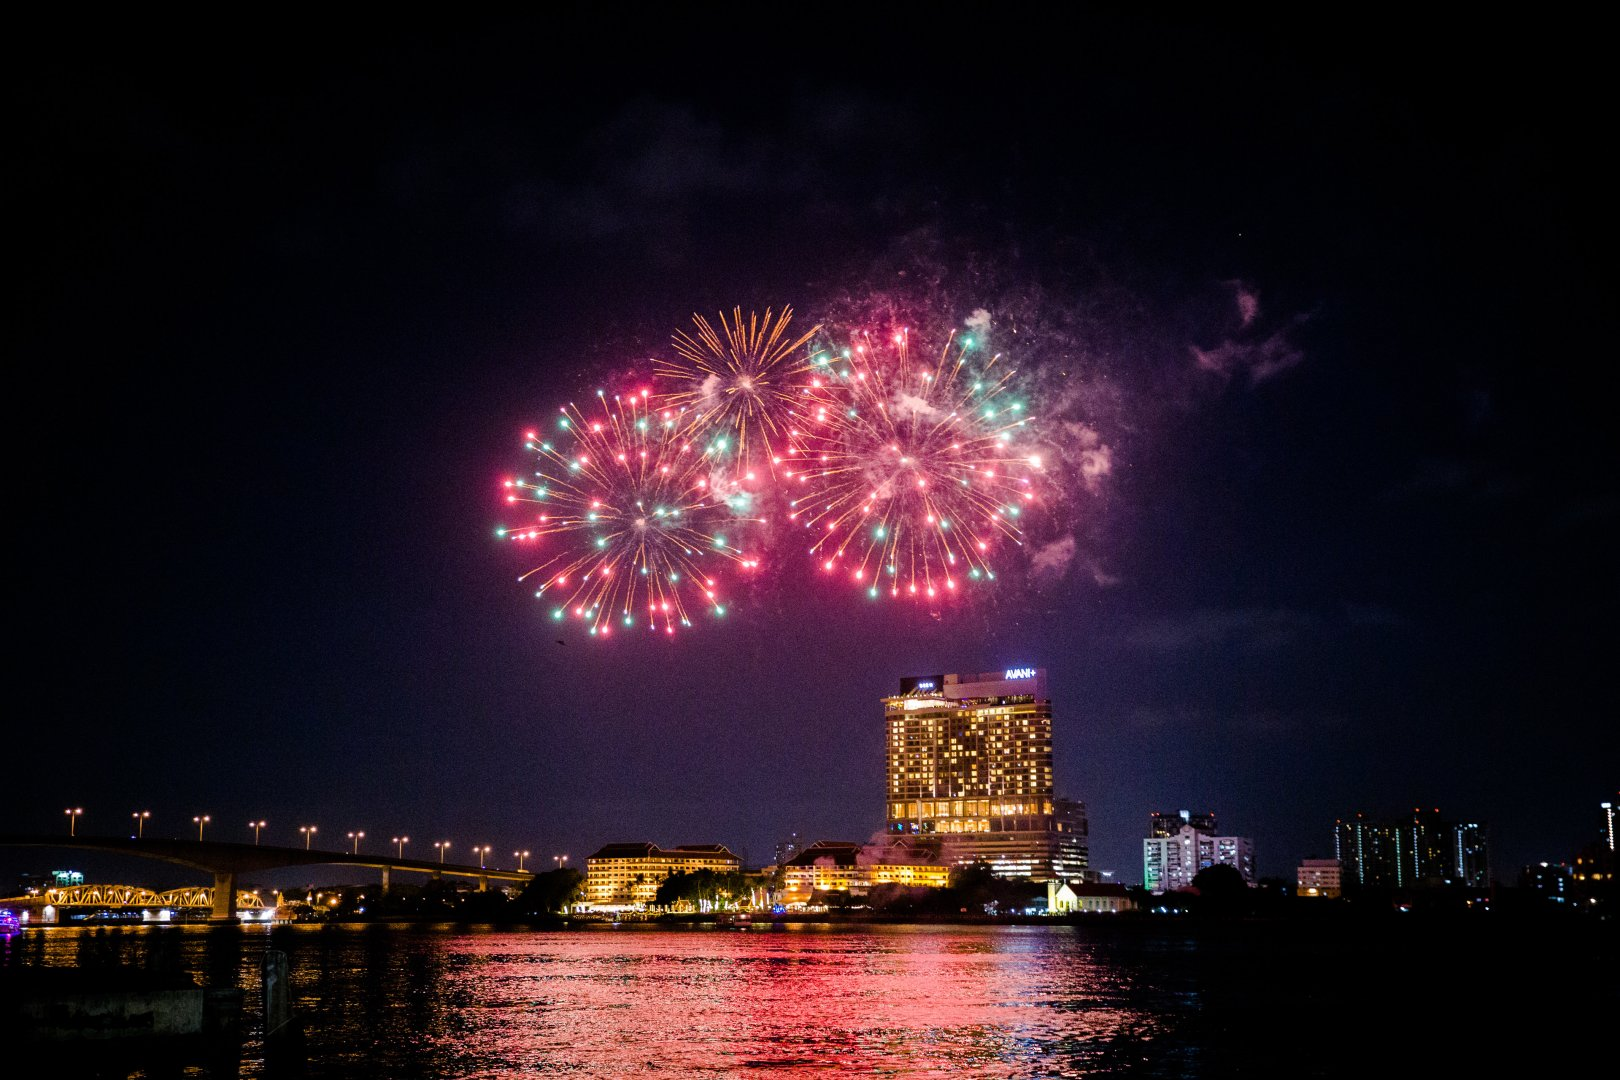 Fireworks Night Sky New Years Day Landmark Reflection Metropolitan area Midnight City Light Pink Lighting Atmospheric phenomenon Human settlement River Event Cityscape Darkness Holiday Urban area New year's eve Recreation Downtown Architecture New year Skyline Fête Metropolis Festival Cloud